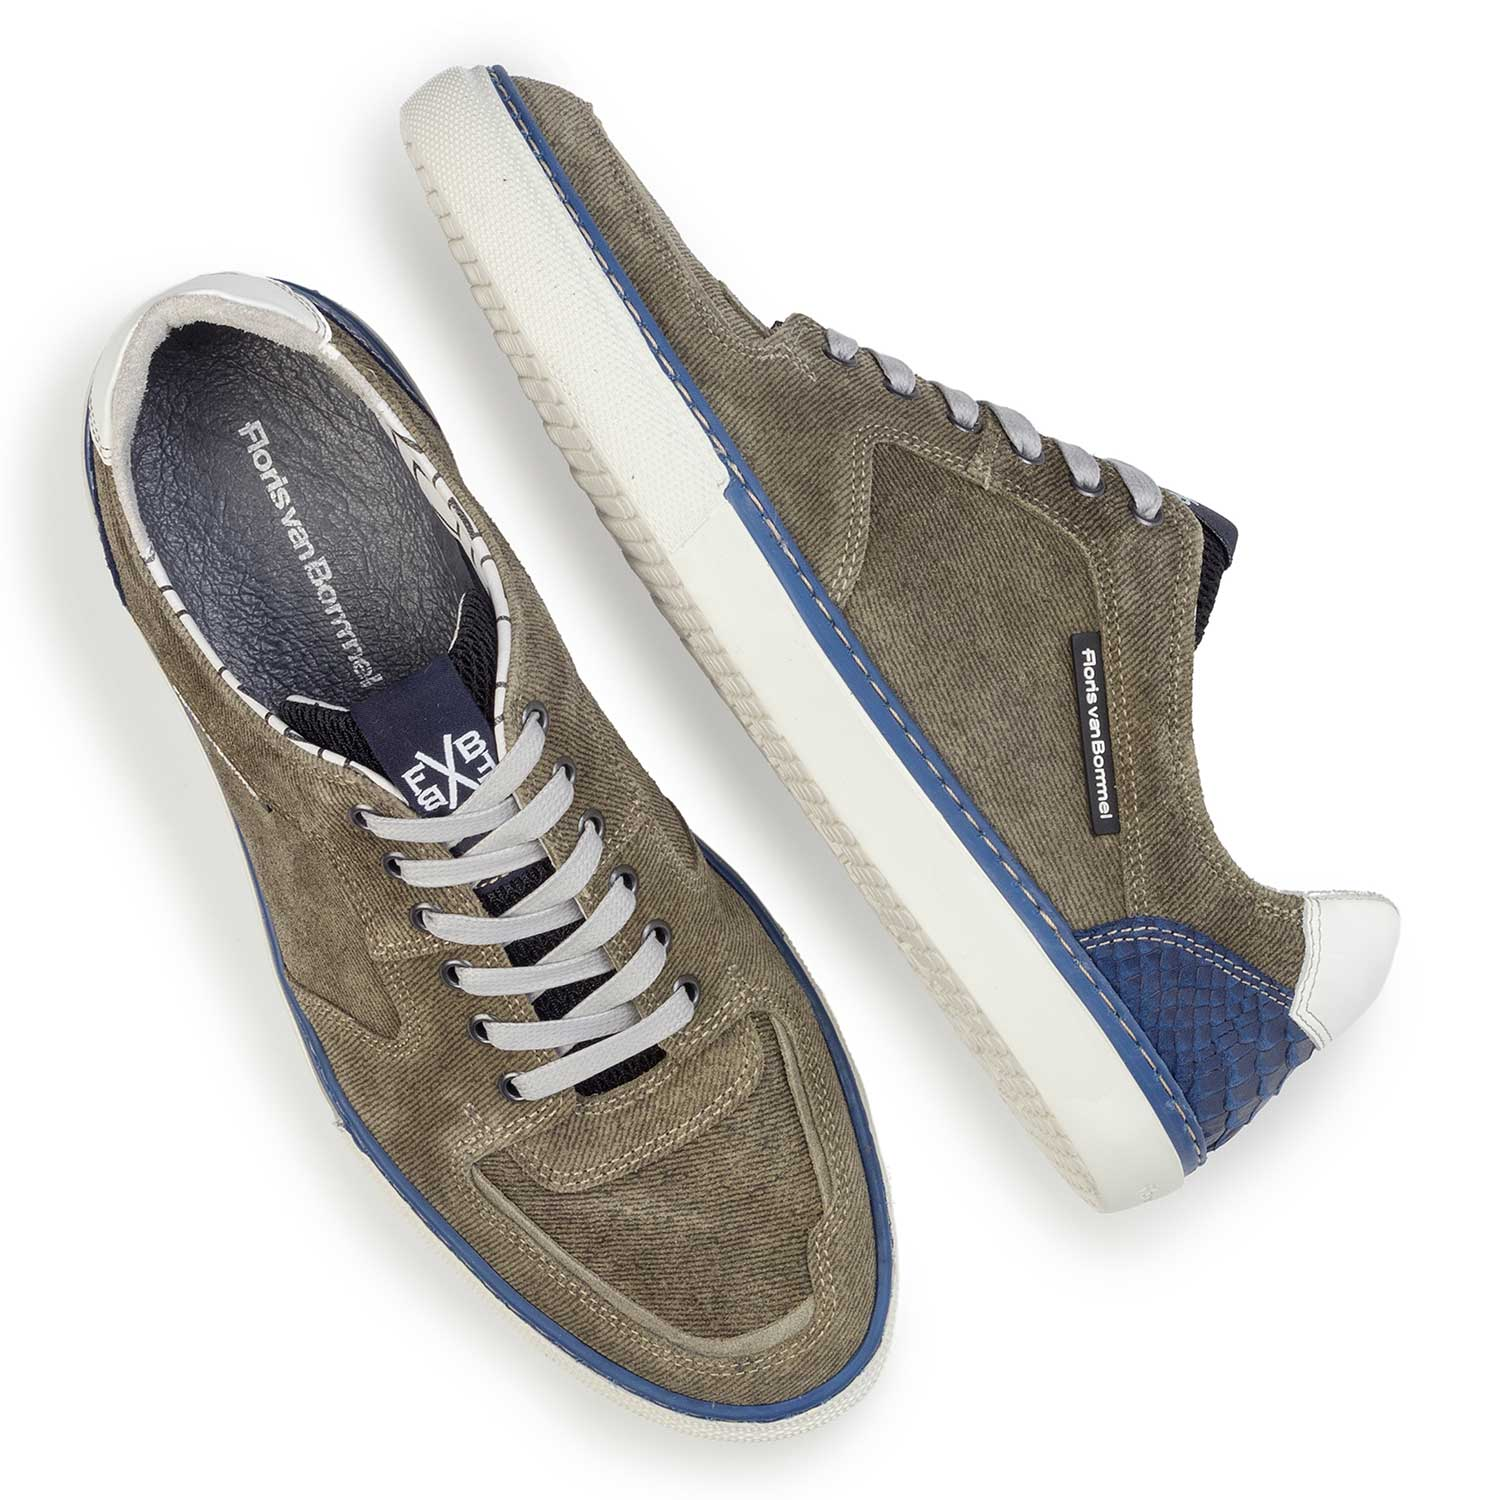 Olive green suede leather sneaker with denim pattern